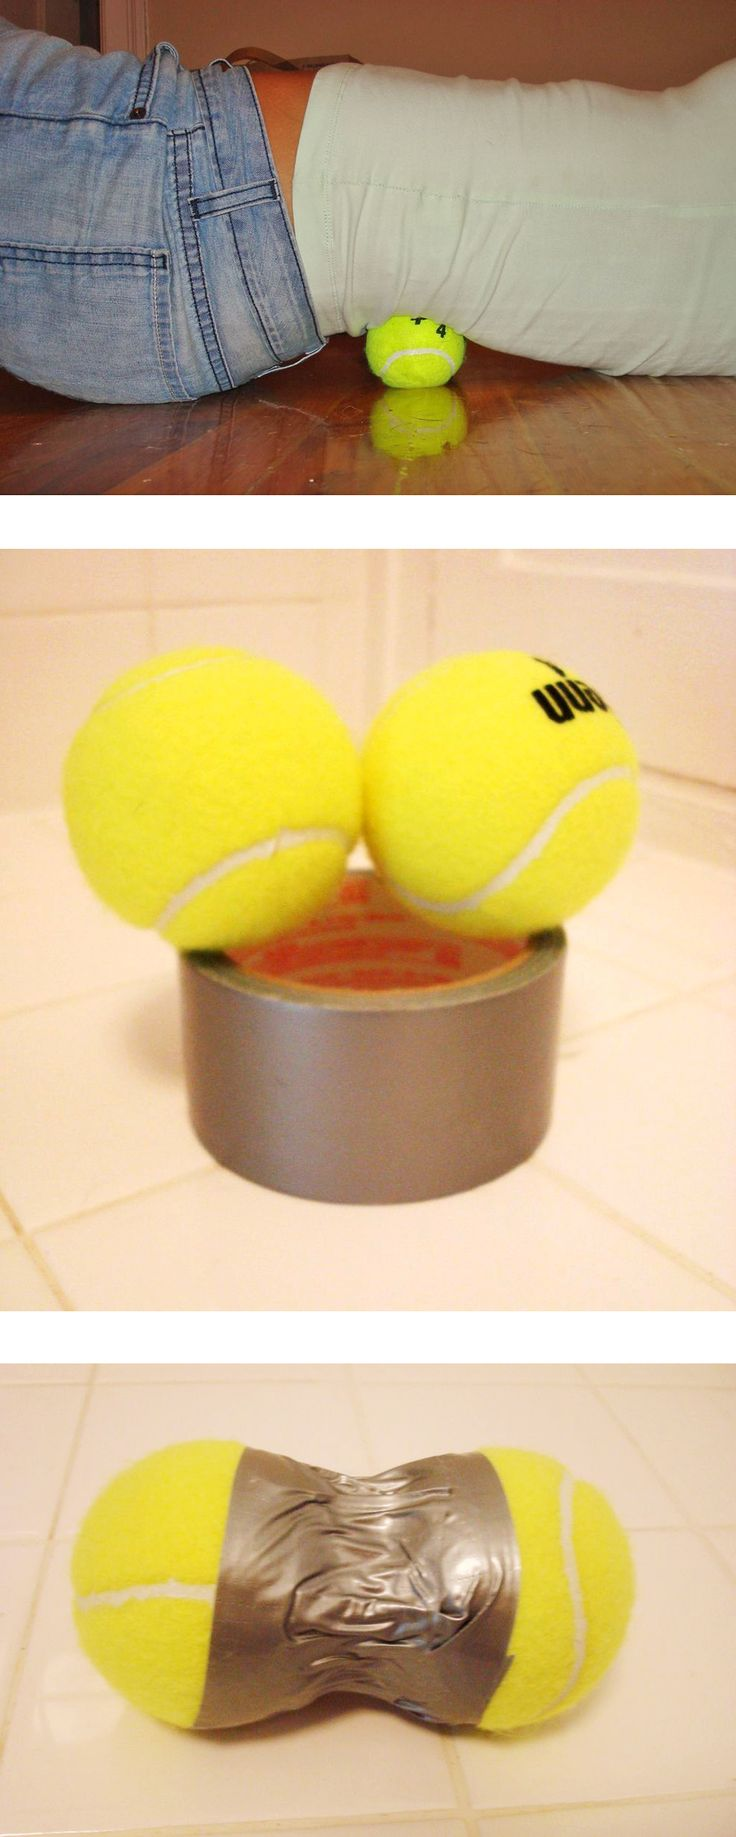 A quick way to relieve back pain. All you need is duct tape and two tennis balls! Lol wow this is so simple it's genius.